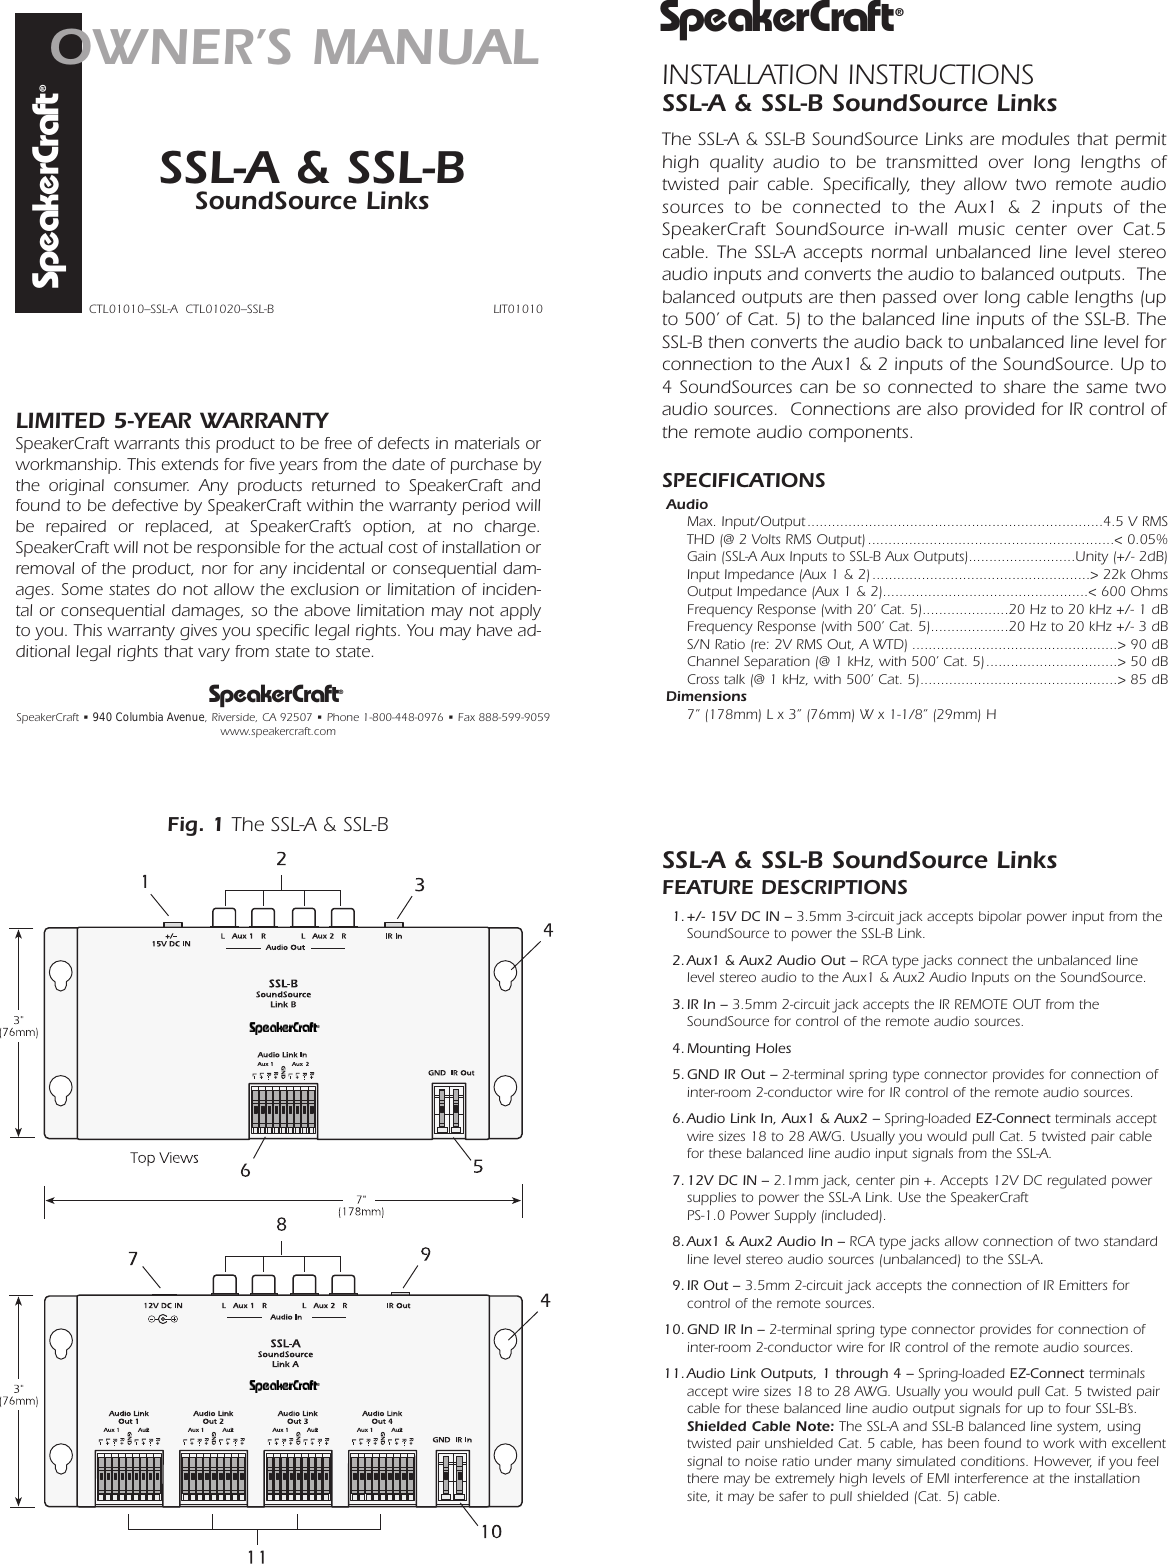 Speakercraft Ssl A Users Manual Ilc 10 Wiring Diagram